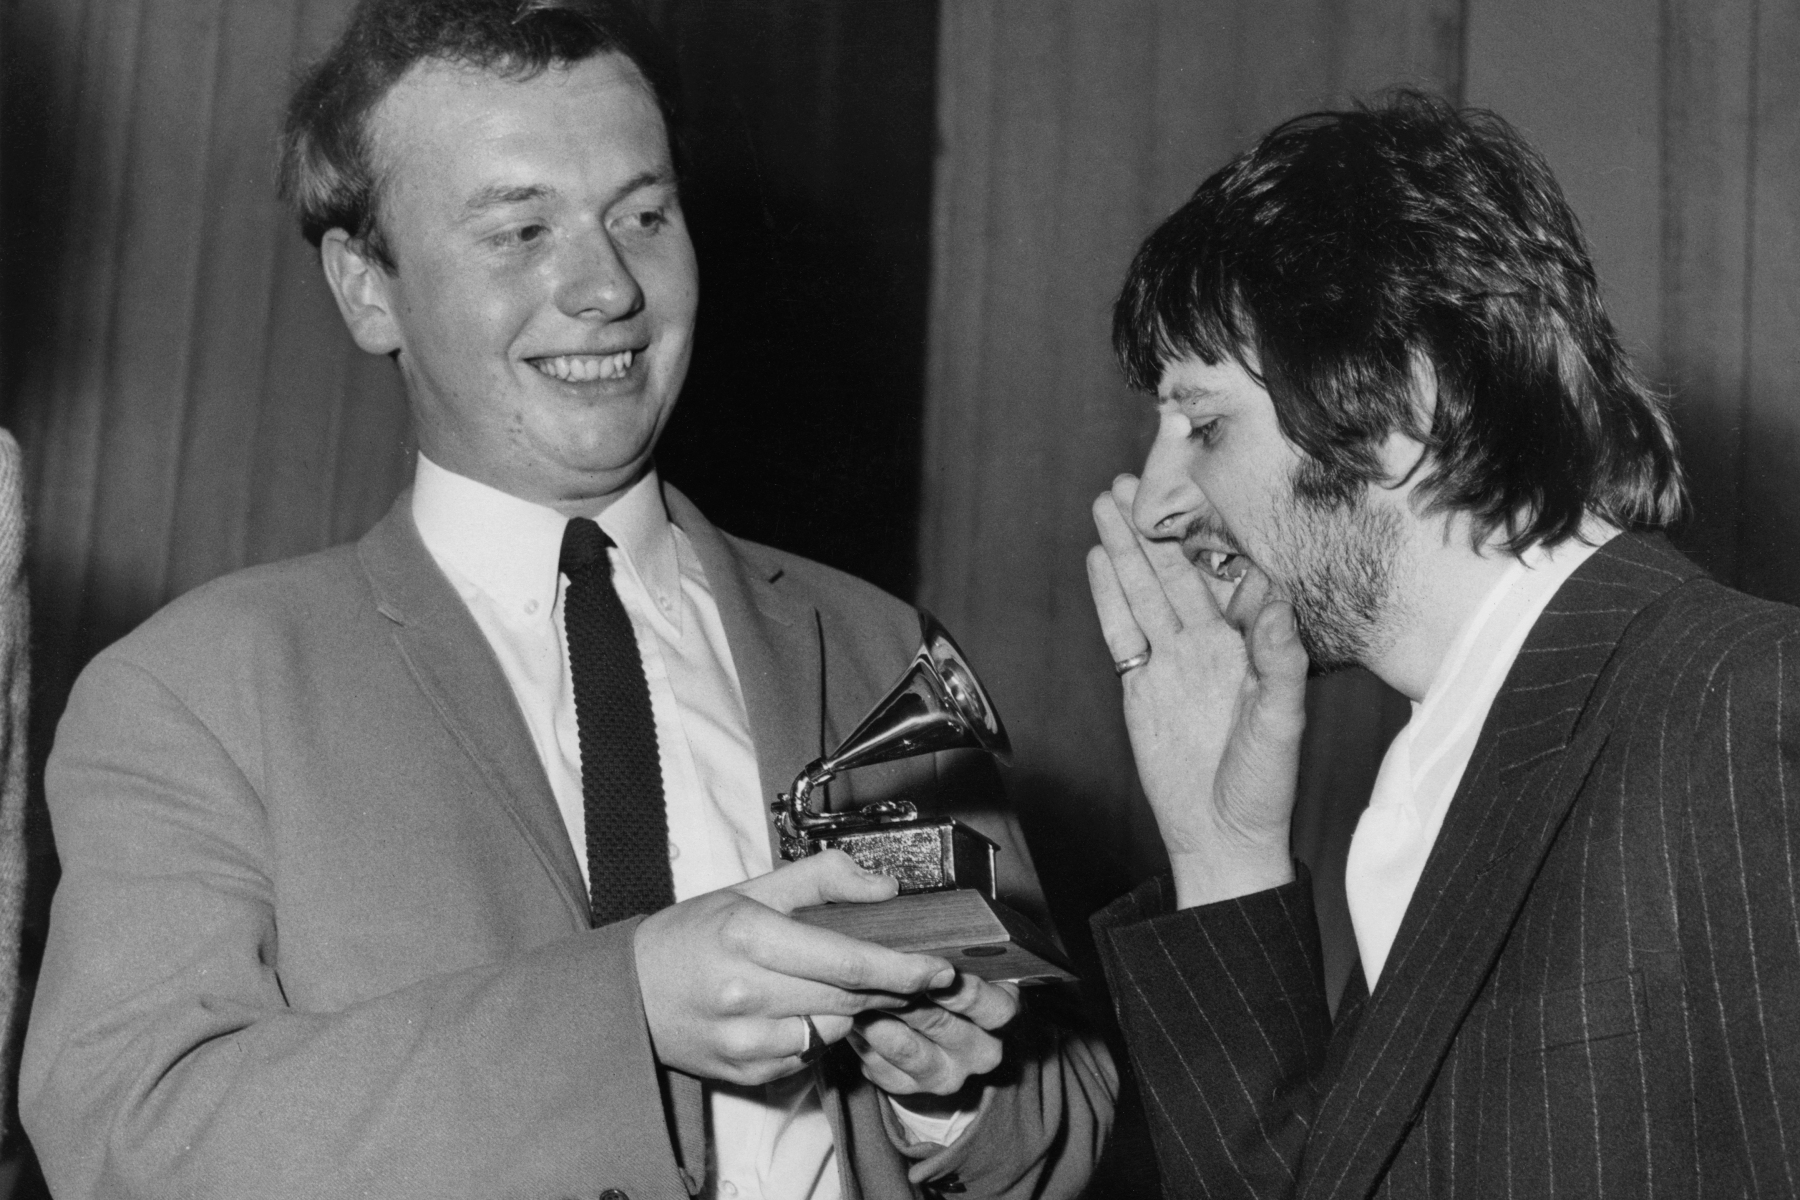 Drummer Ringo Starr of English rock band the Beatles congratulates EMI recording studio audio engineer Geoff Emerick (left) on his Grammy Award at the EMI studios in London, 7th March 1968. Emerick engineered the sound on the Beatles' album 'Sgt. Pepper's Lonely Hearts Club Band'. (Photo by Monti Spry/Central Press/Hulton Archive/Getty Images)